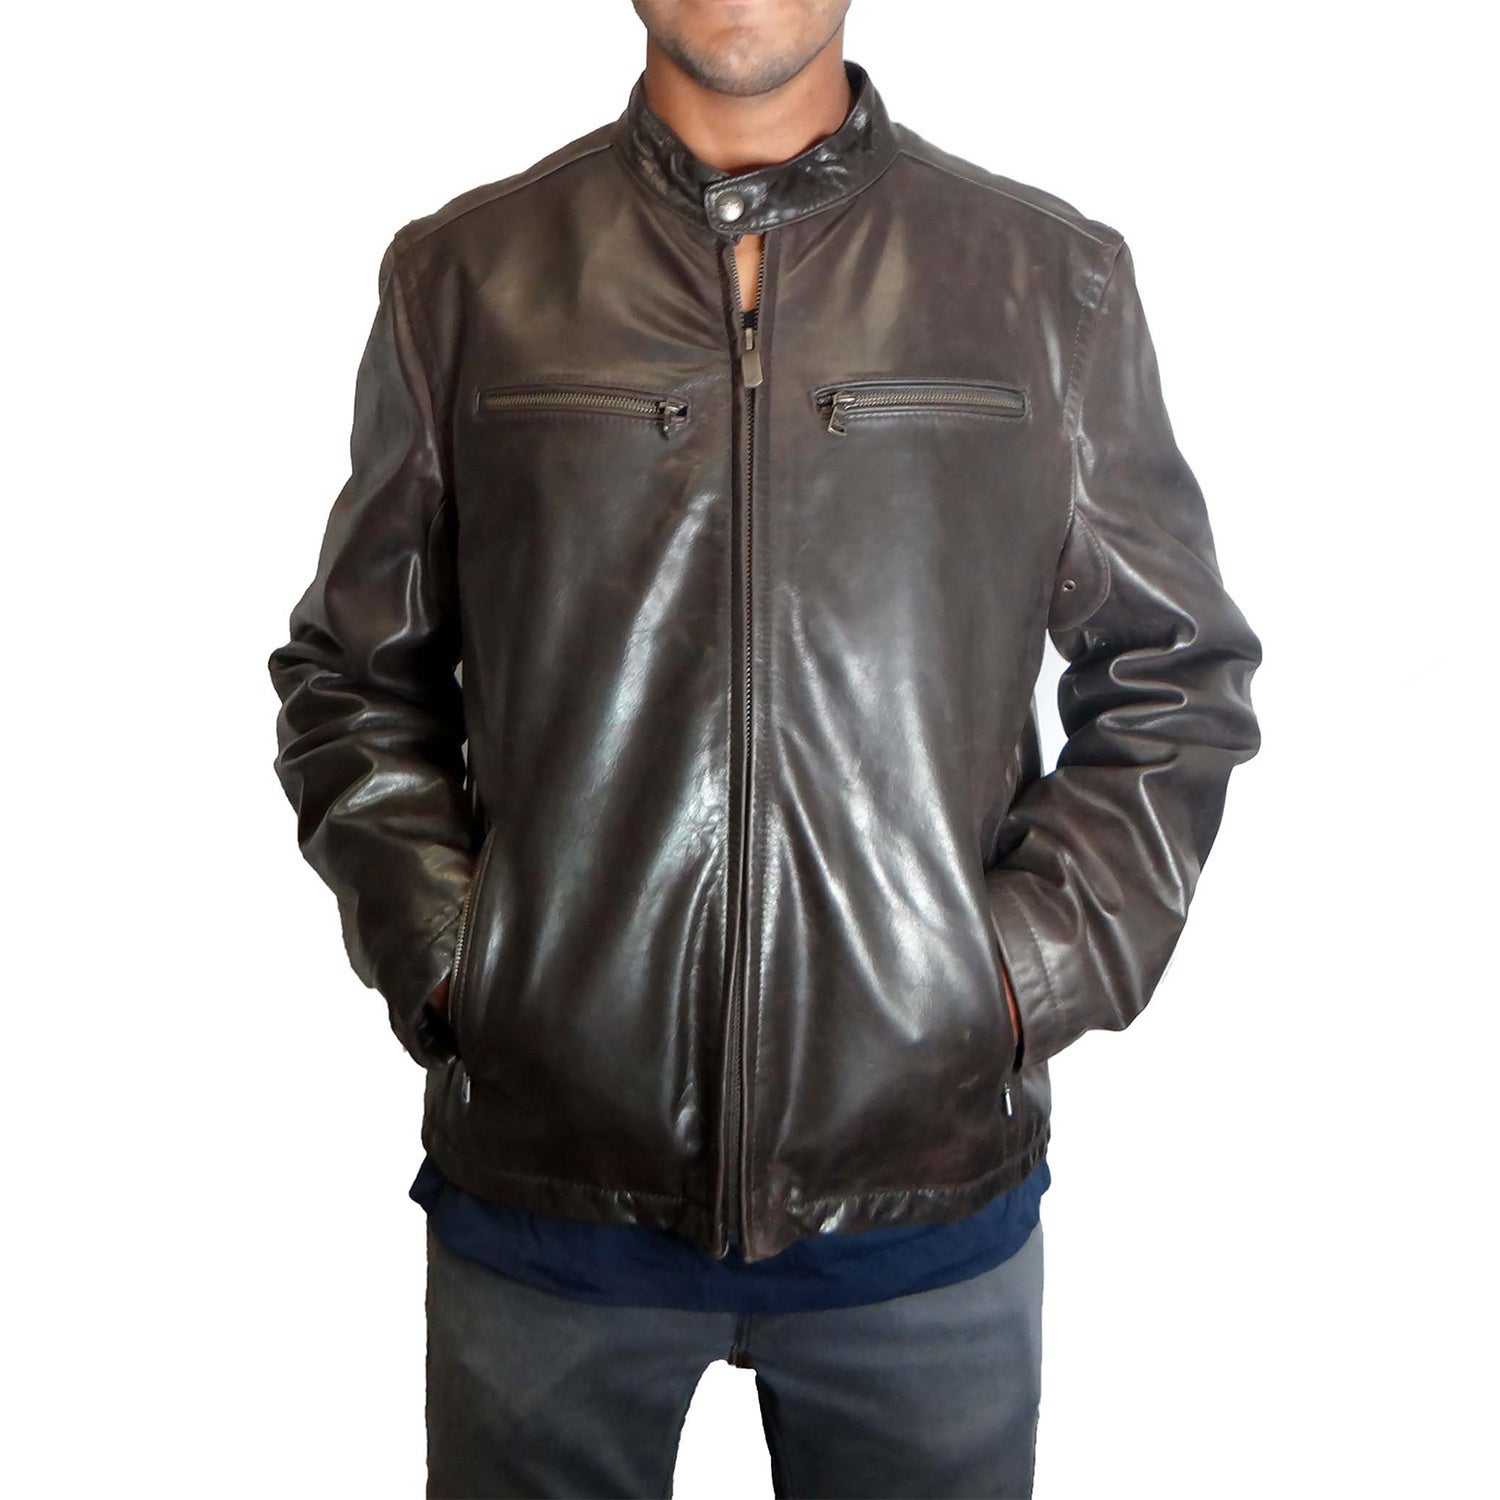 494cb5252e4 Shop Dockers Men s Moto Black Leather Jacket - Free Shipping Today -  Overstock - 12653908